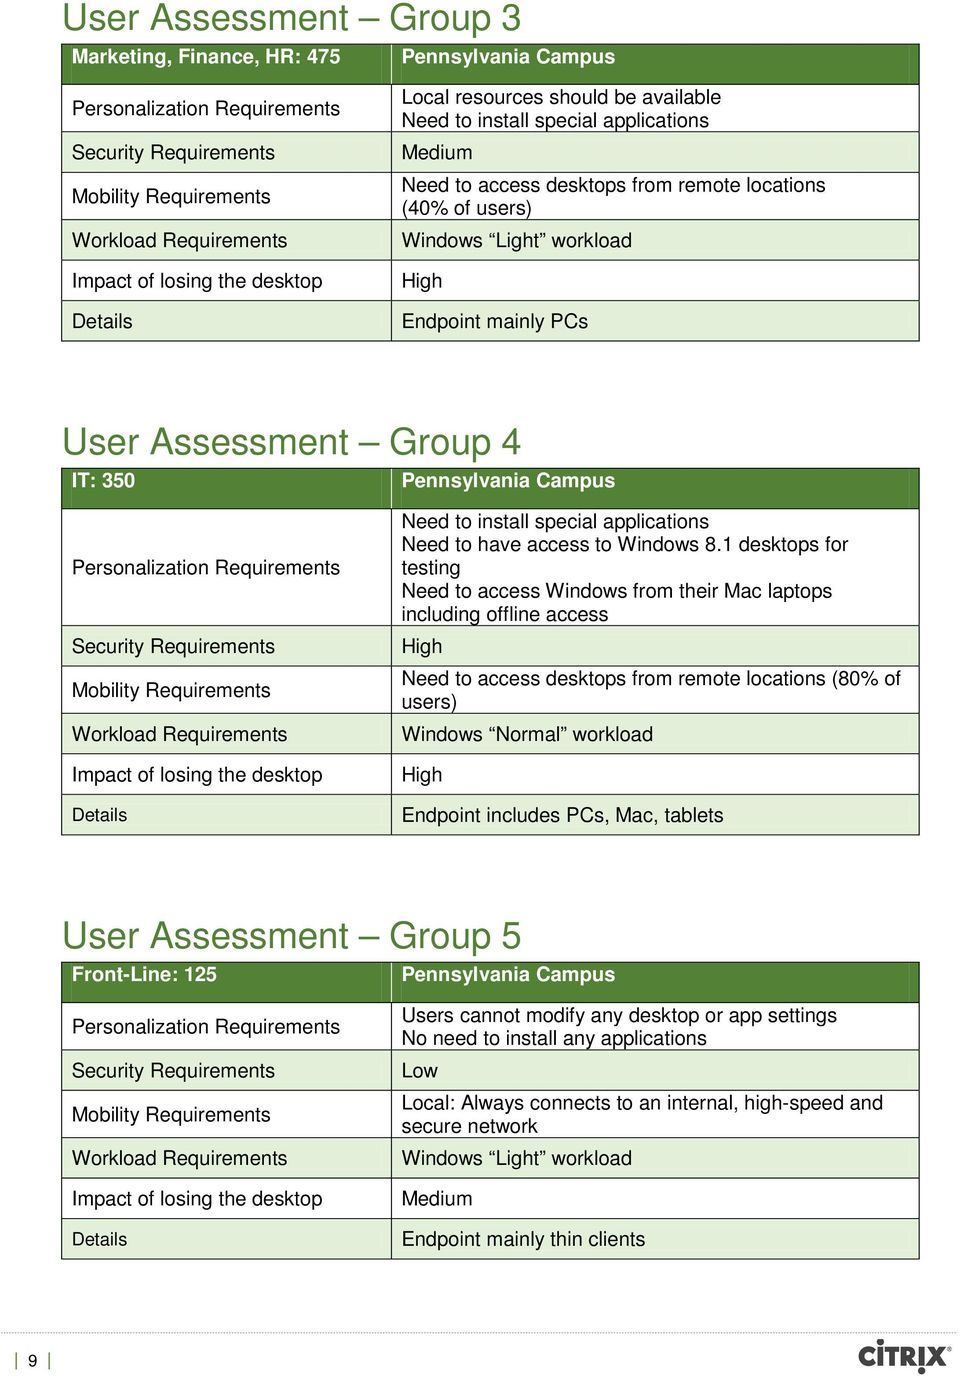 User Assessment Group 4 IT: 350 Pennsylvania Campus Personalization Requirements Security Requirements Mobility Requirements Workload Requirements Impact of losing the desktop Details Need to install